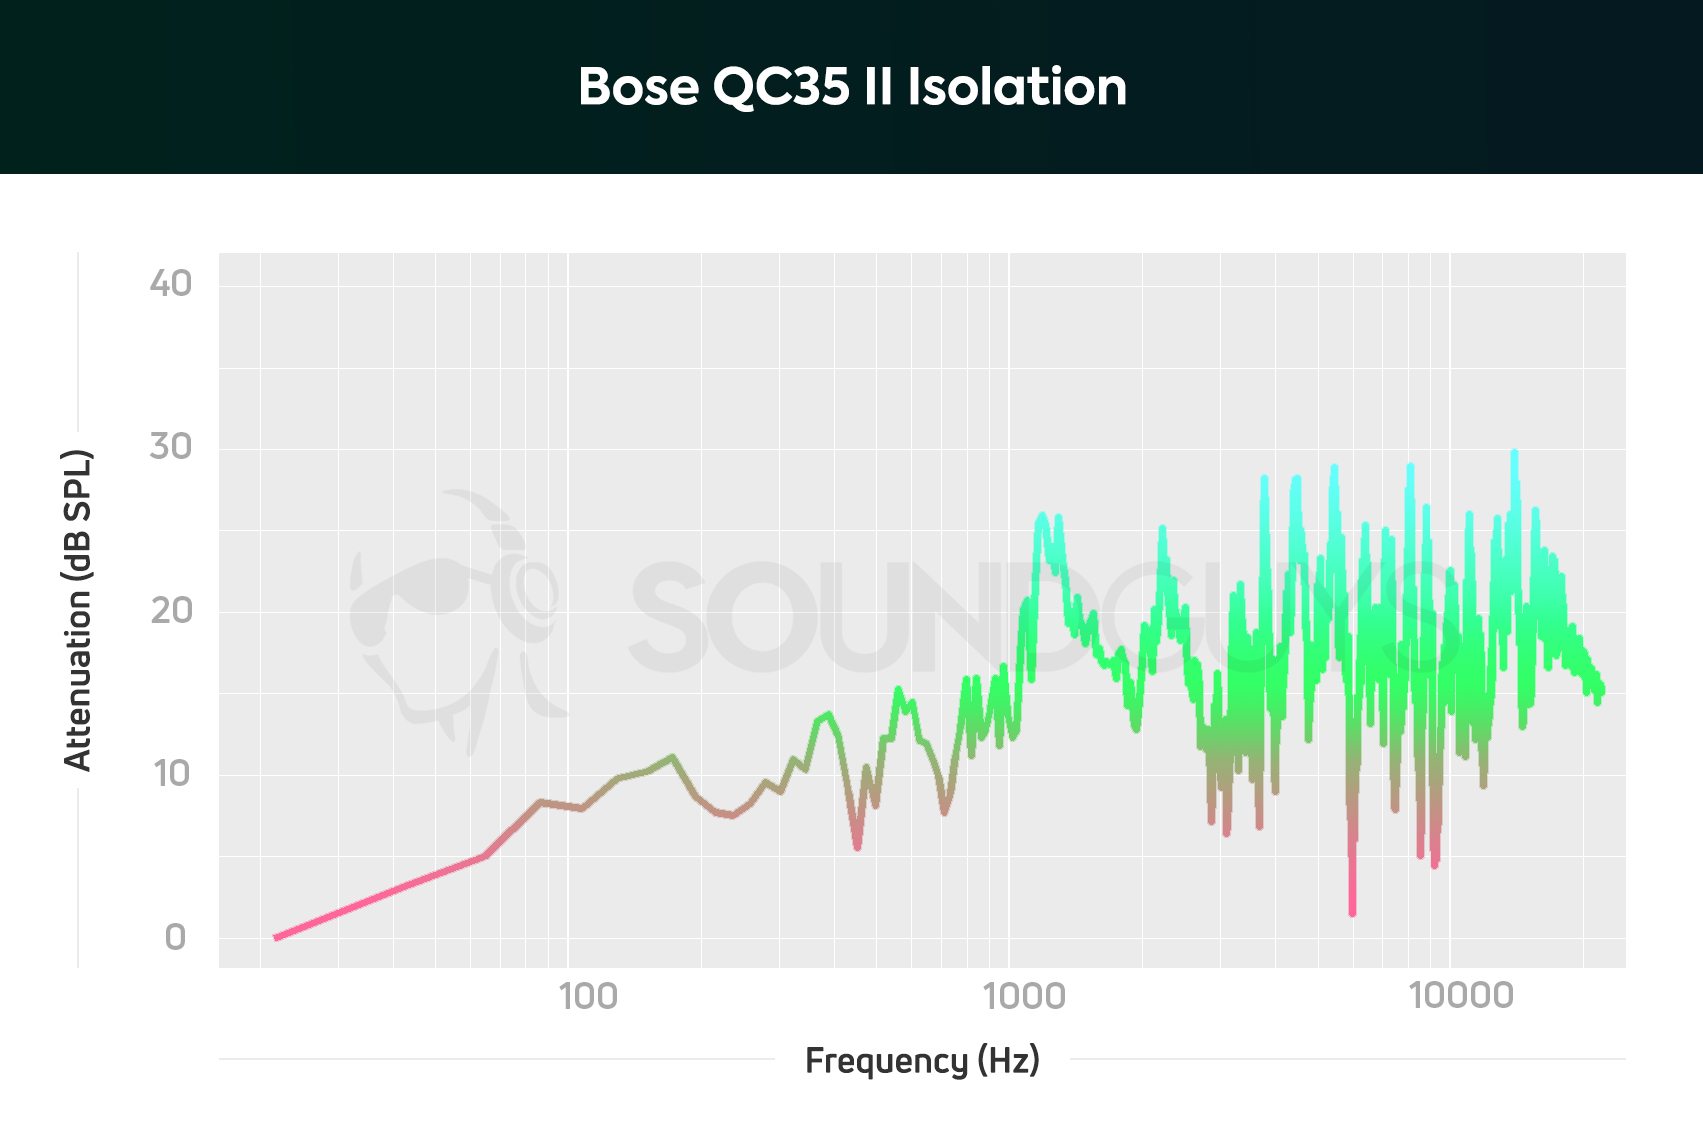 hight resolution of a chart showing the isolation performance of the bose qc35 ii headphones